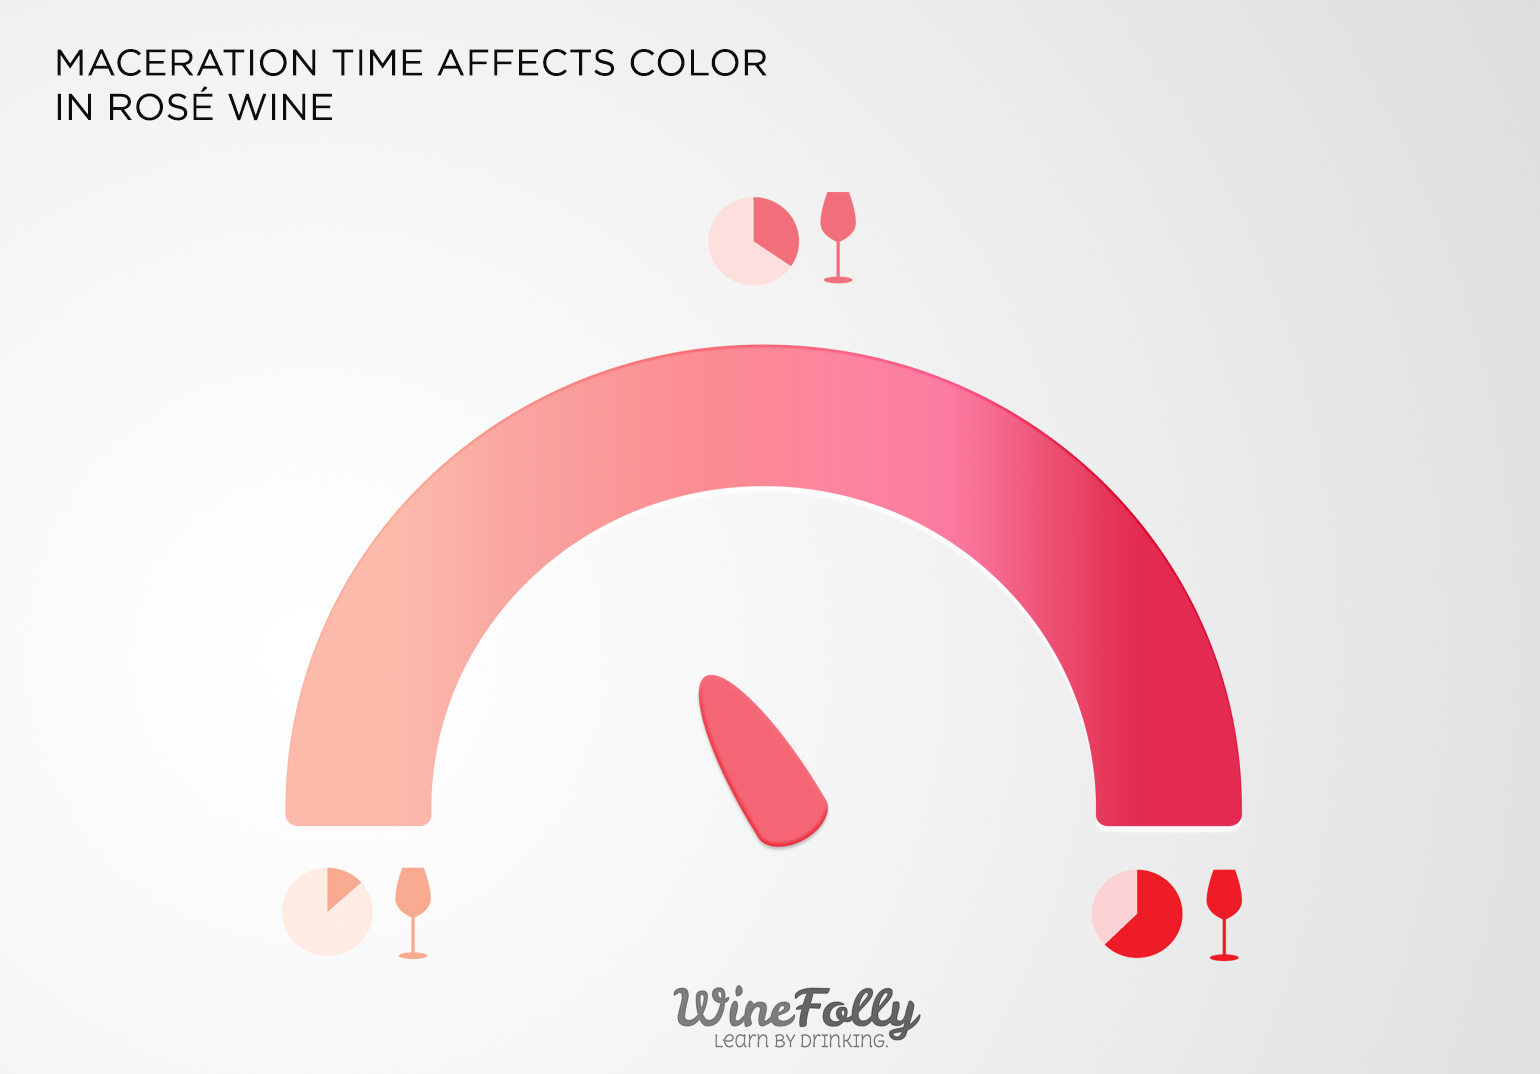 How Time Affects the Color of Rose Wine